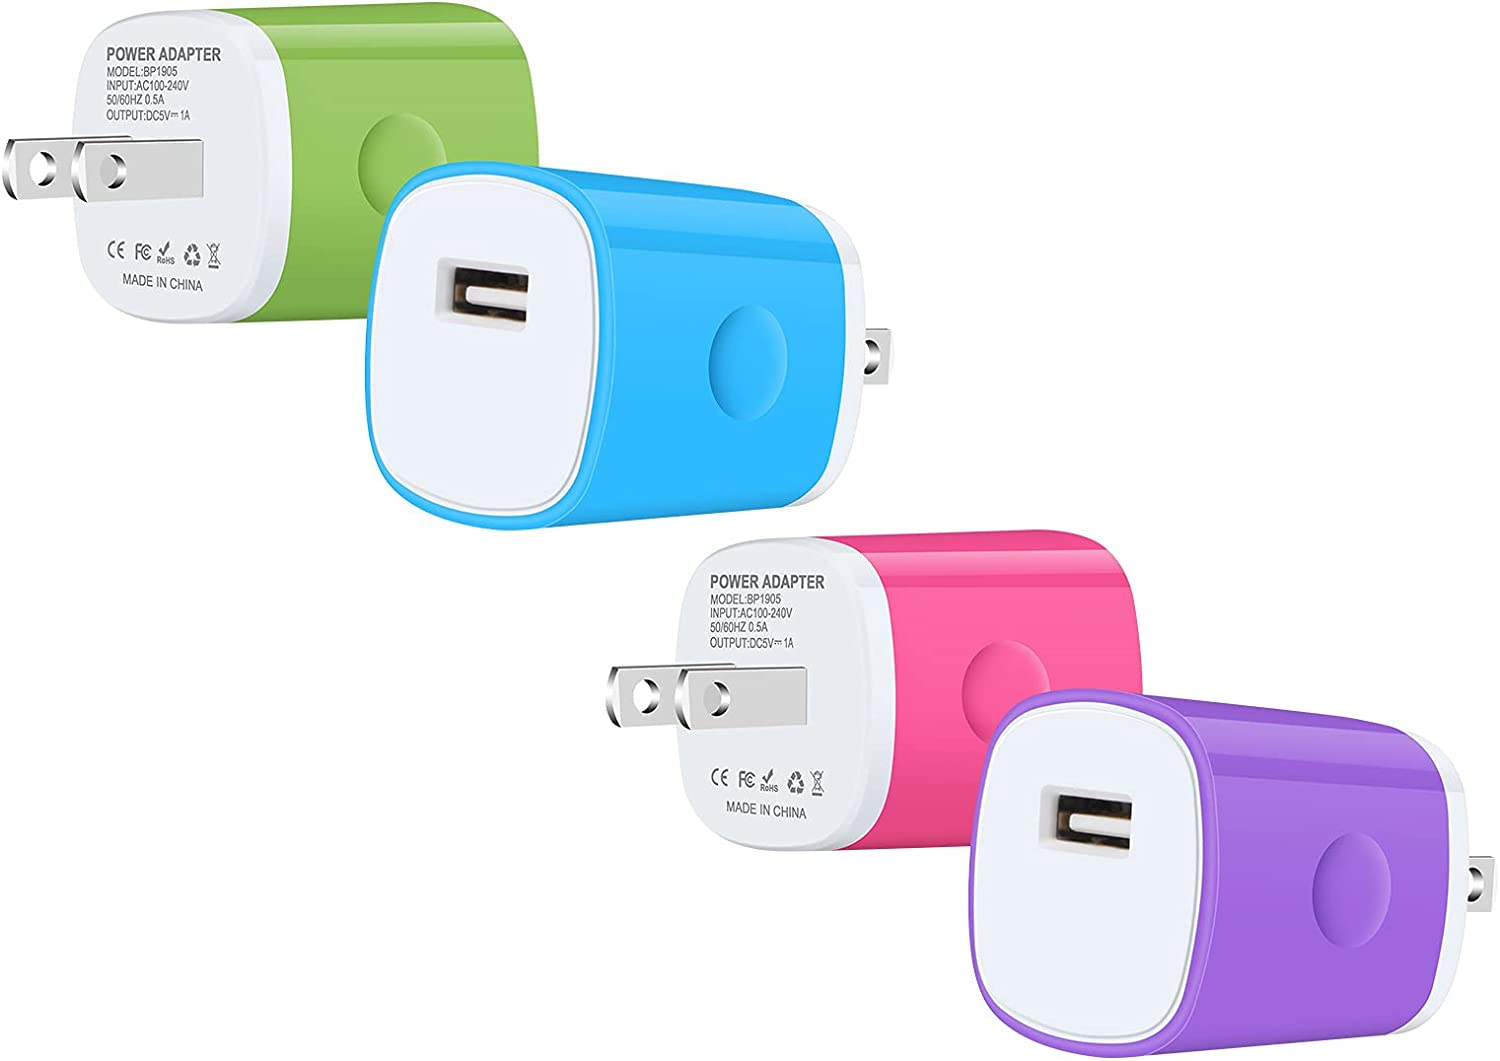 iPhone Charger Fast Charging Block 4-Pack 5V/1A Universal One Port USB Wall Plug for Samsung Galaxy S11 S21 Ultra S20FE Note 10 9 iPhone 12 SE 11Pro Max XS XR 8 7 Plus LG Charger Base Box Cube